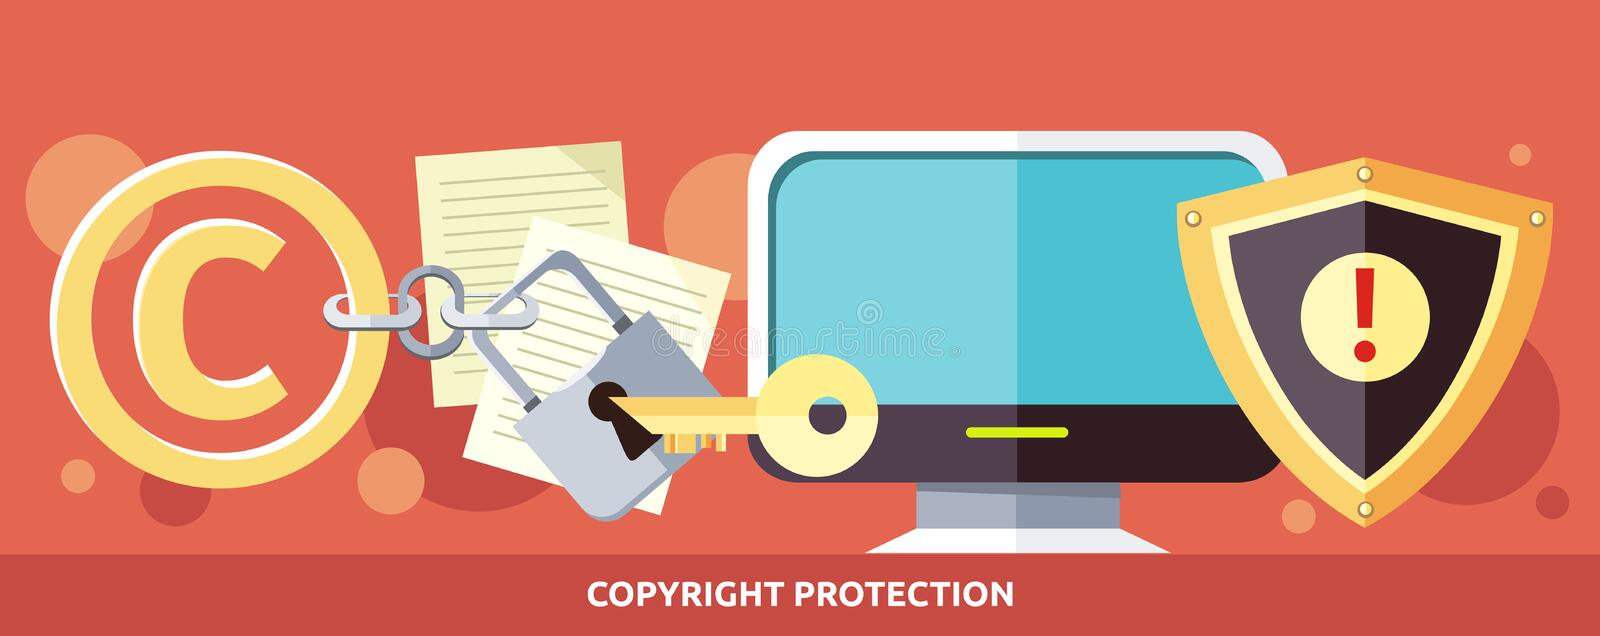 Concept of Copyright Protection in Internet royalty free illustration